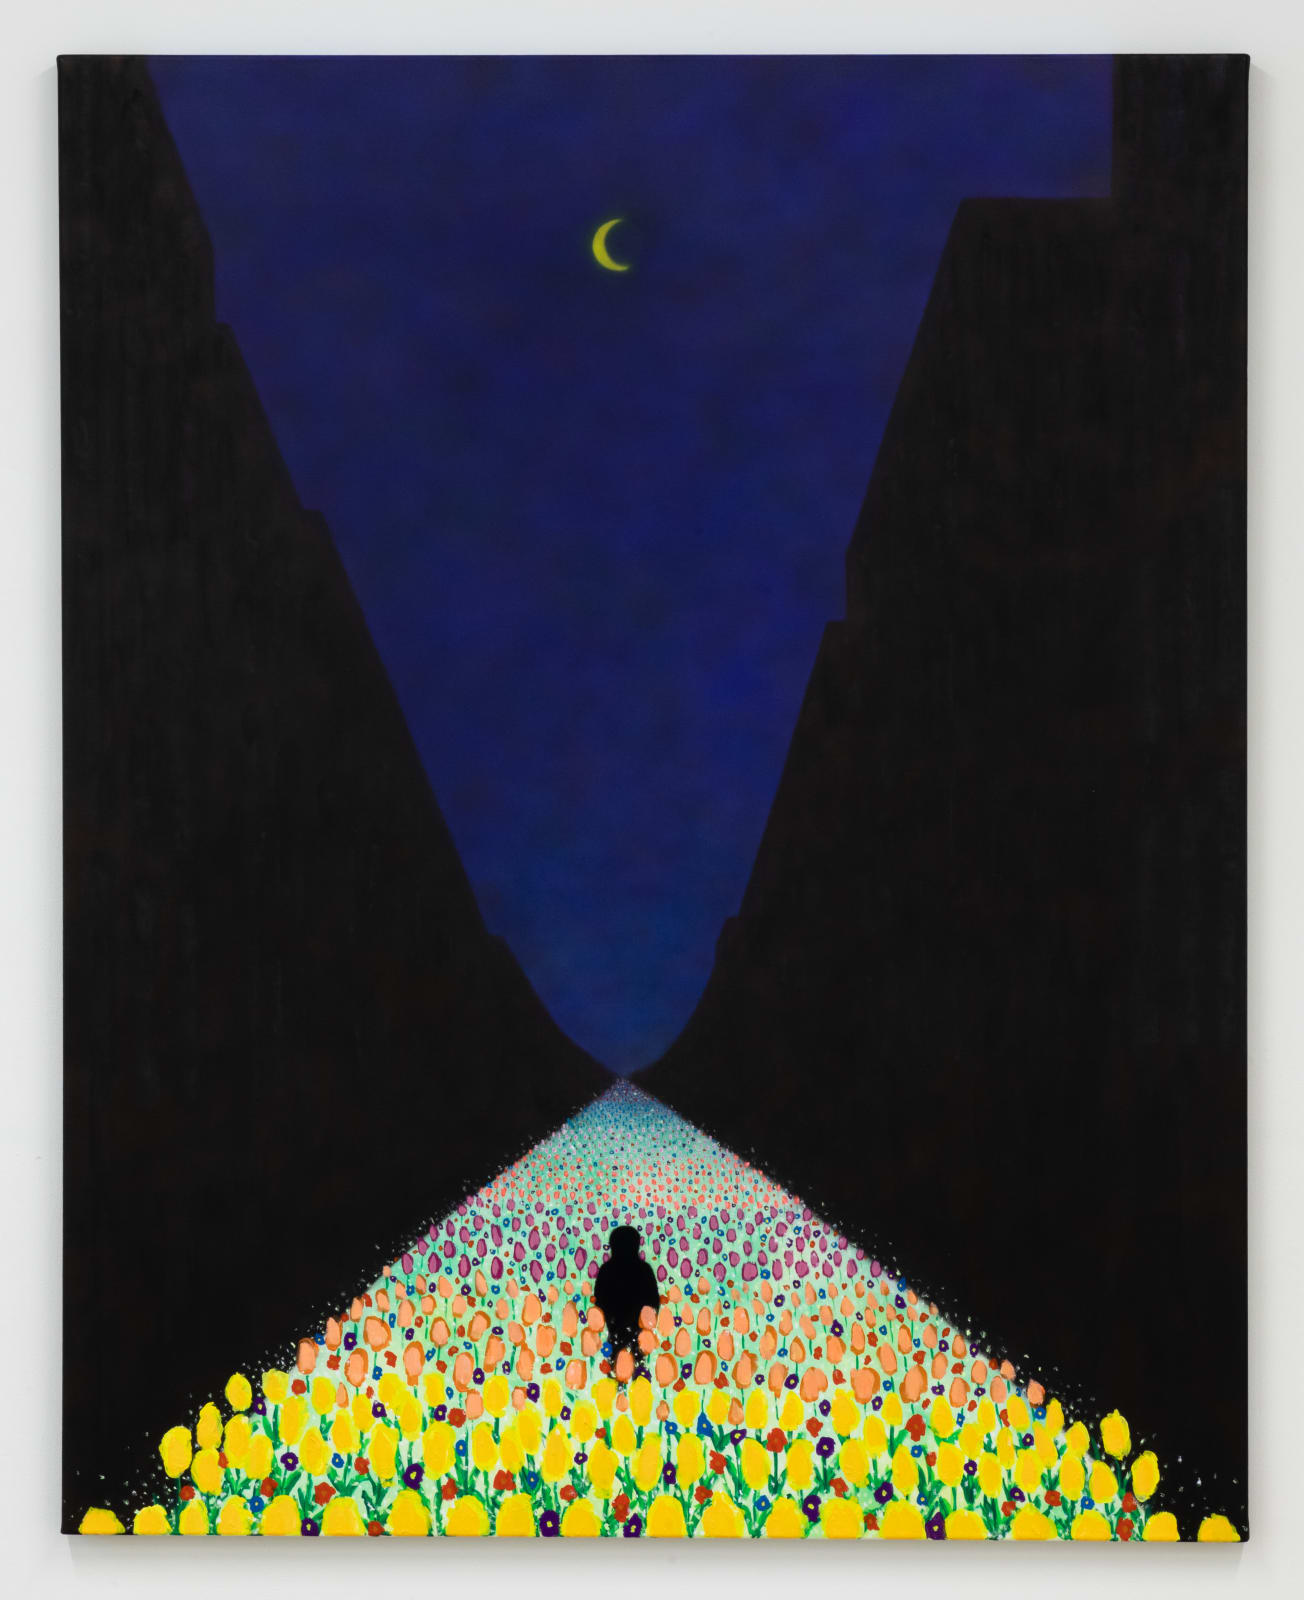 Sung Hwa Kim, Nocturne: My love, hope, and sweet dreams. I'm still here and that is all that matters, 2021